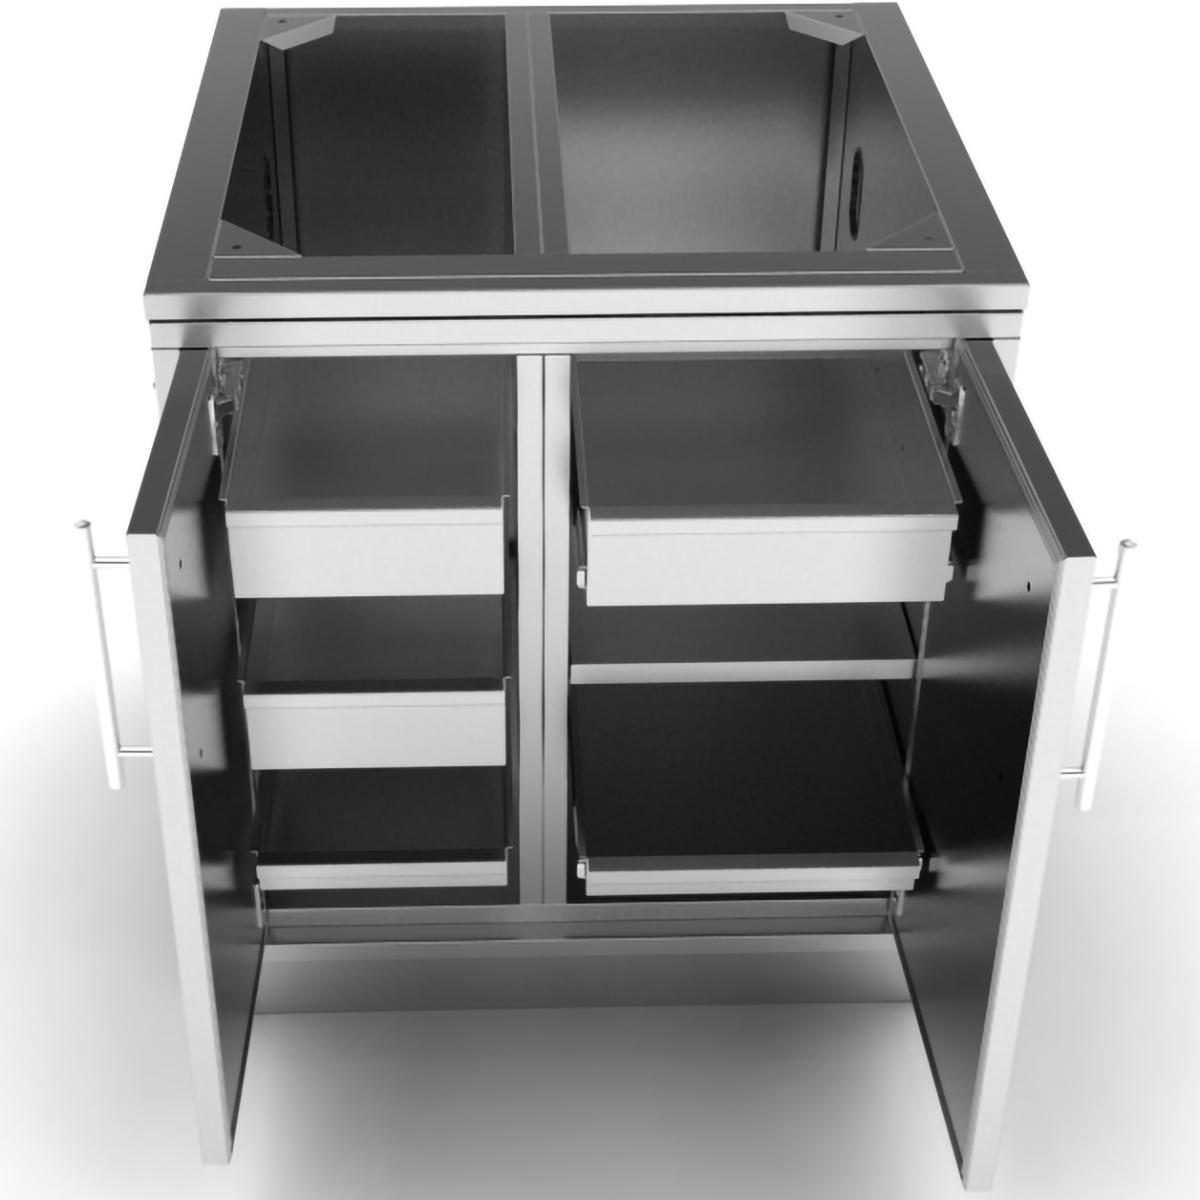 Sunstone 30 Outdoor Kitchen Weather Sealed Dry Storage Island Cabinet Sbc30dspc In 2019 Outdoor Kitchen Kits Storage Hinges For Cabinets